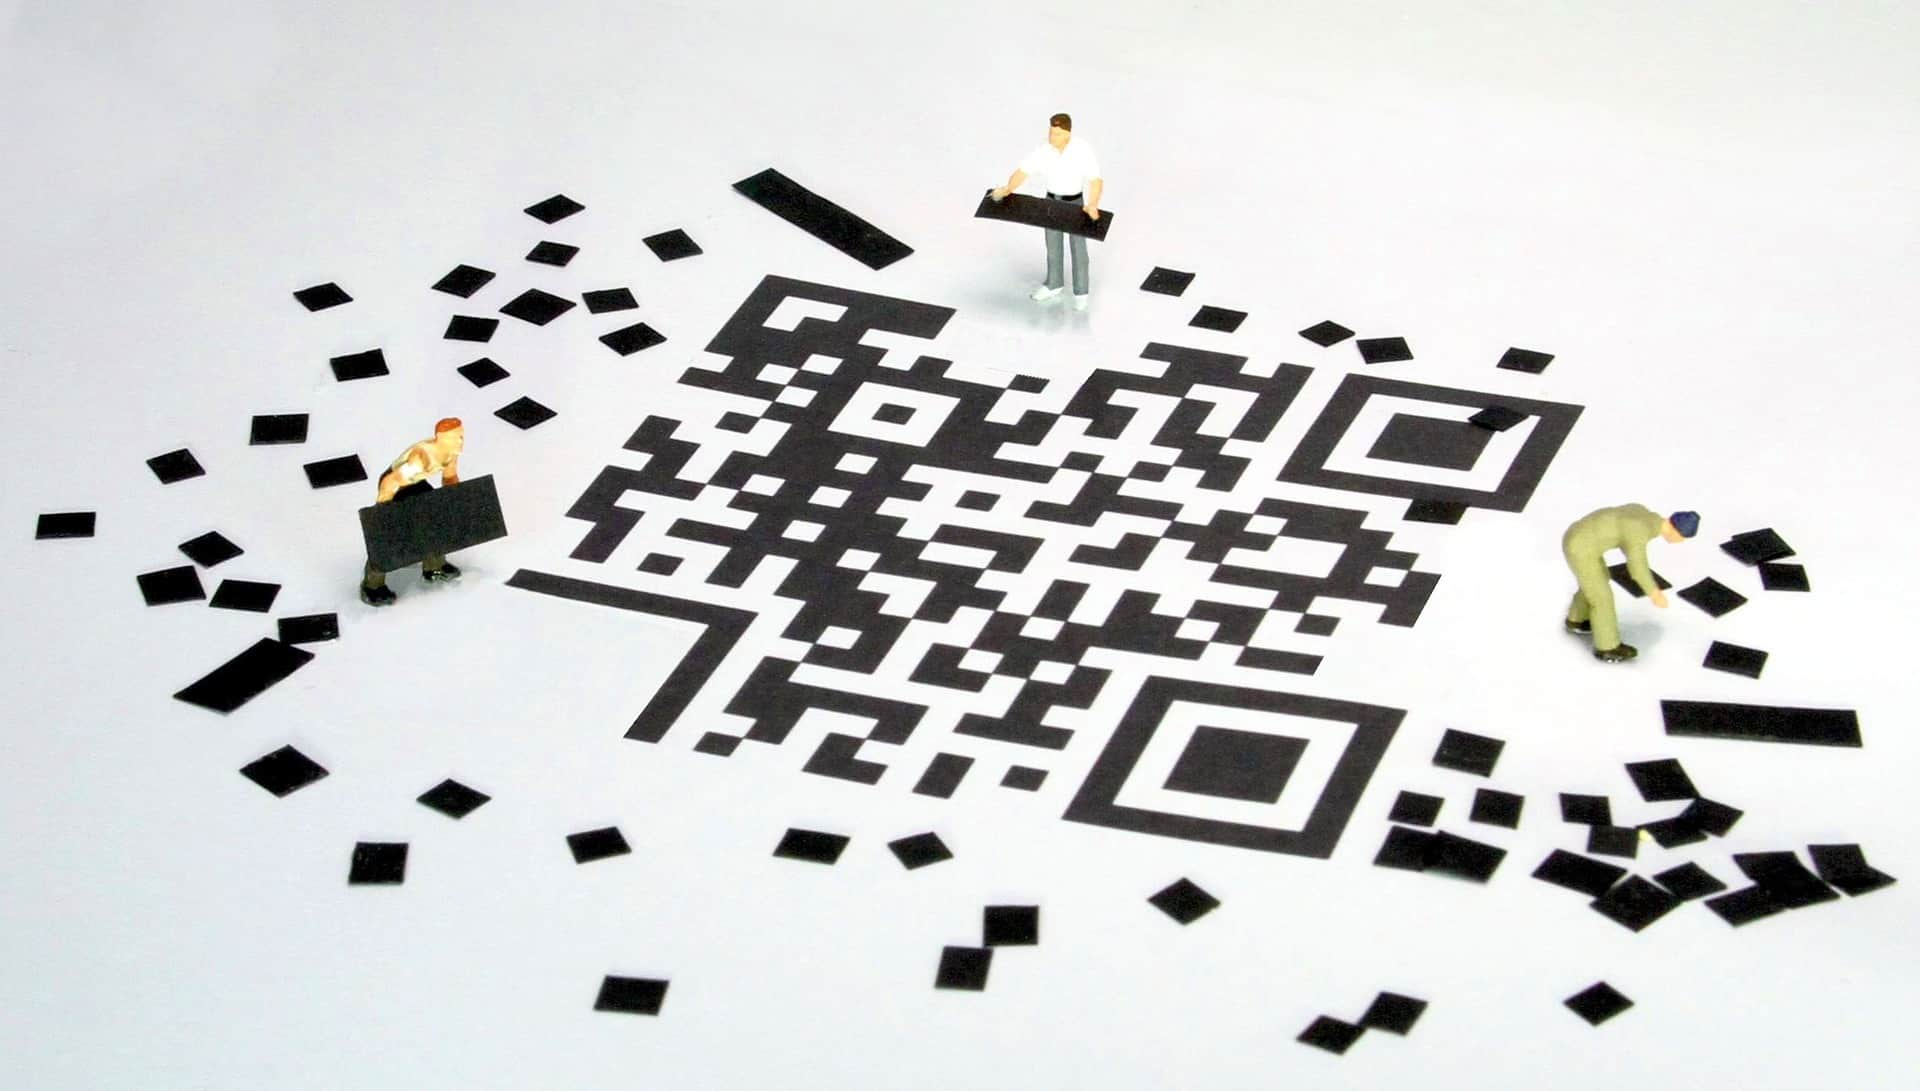 Men working on giant QR code